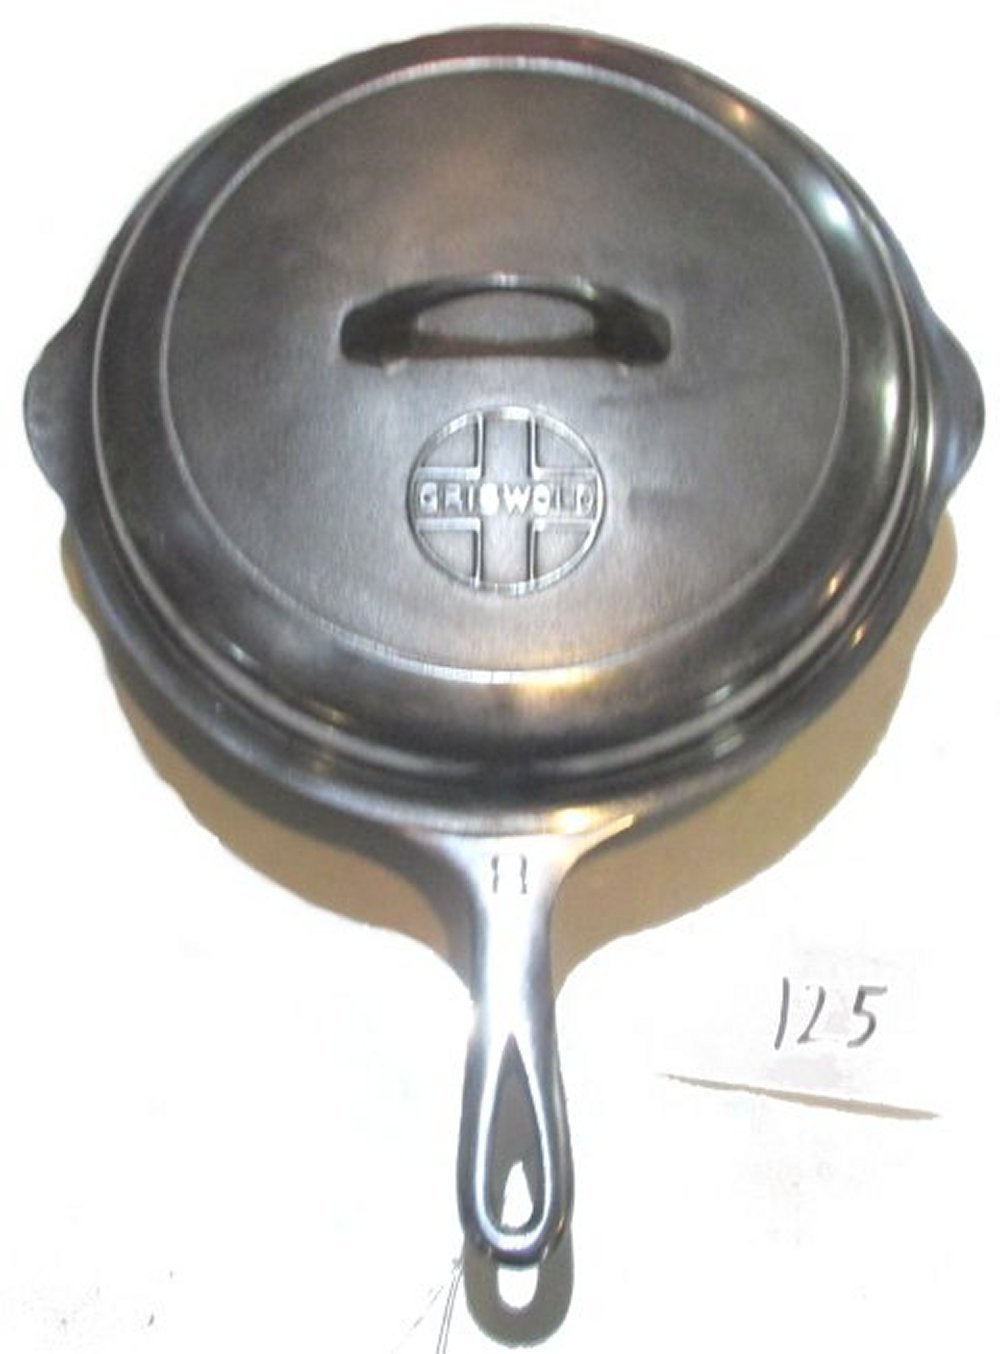 #8 Griswold Chrome Chicken Fryer with Lid